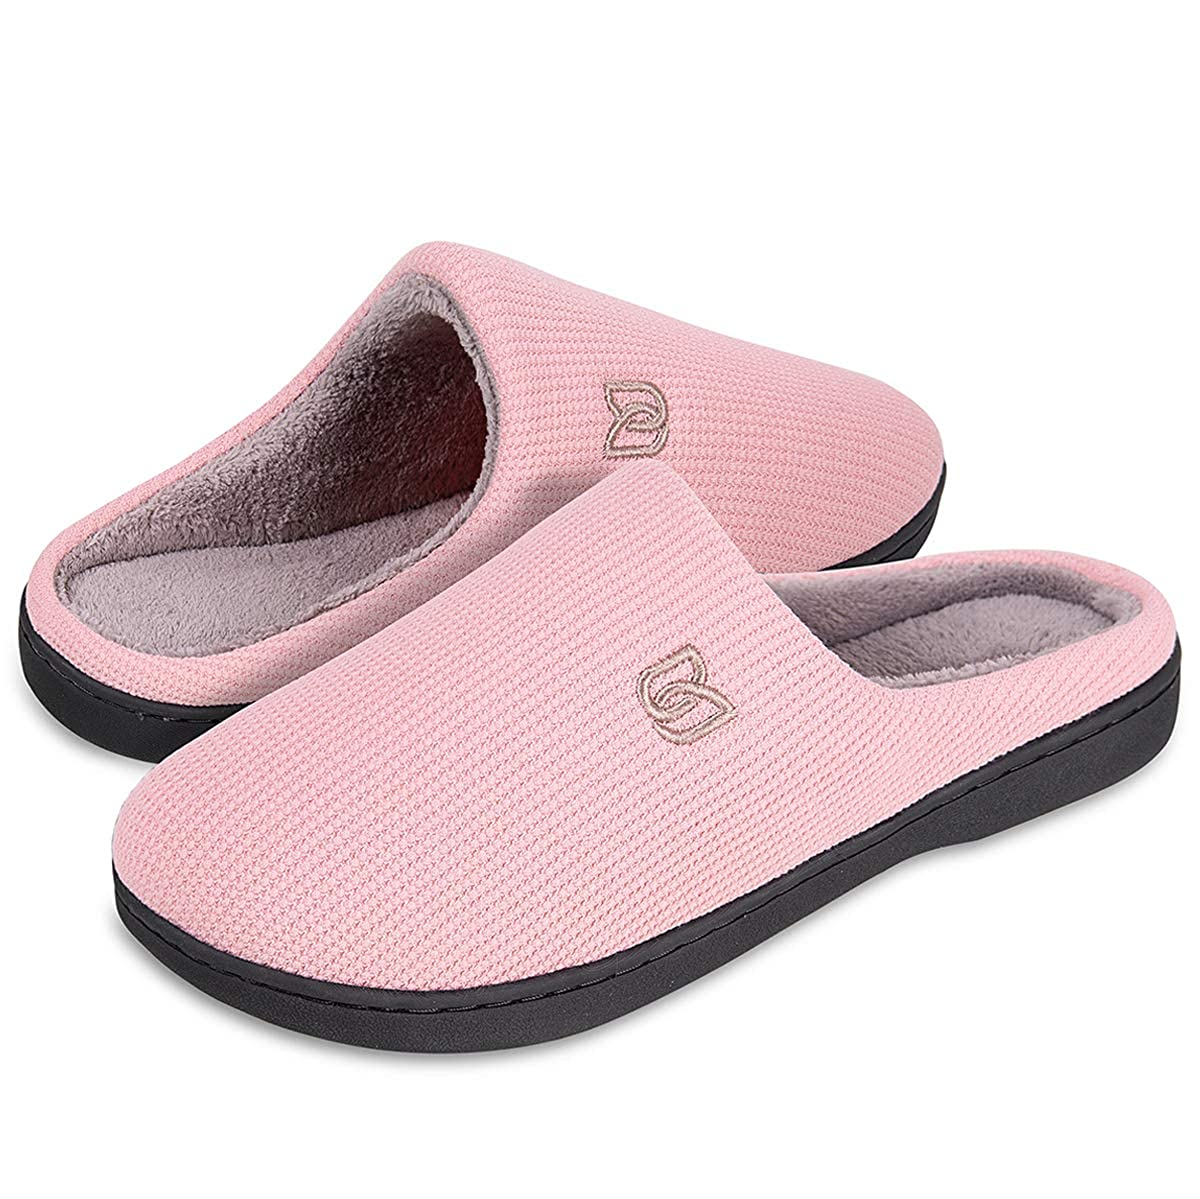 Men's Slippers Memory Foam Classic Two Tone House Slippers